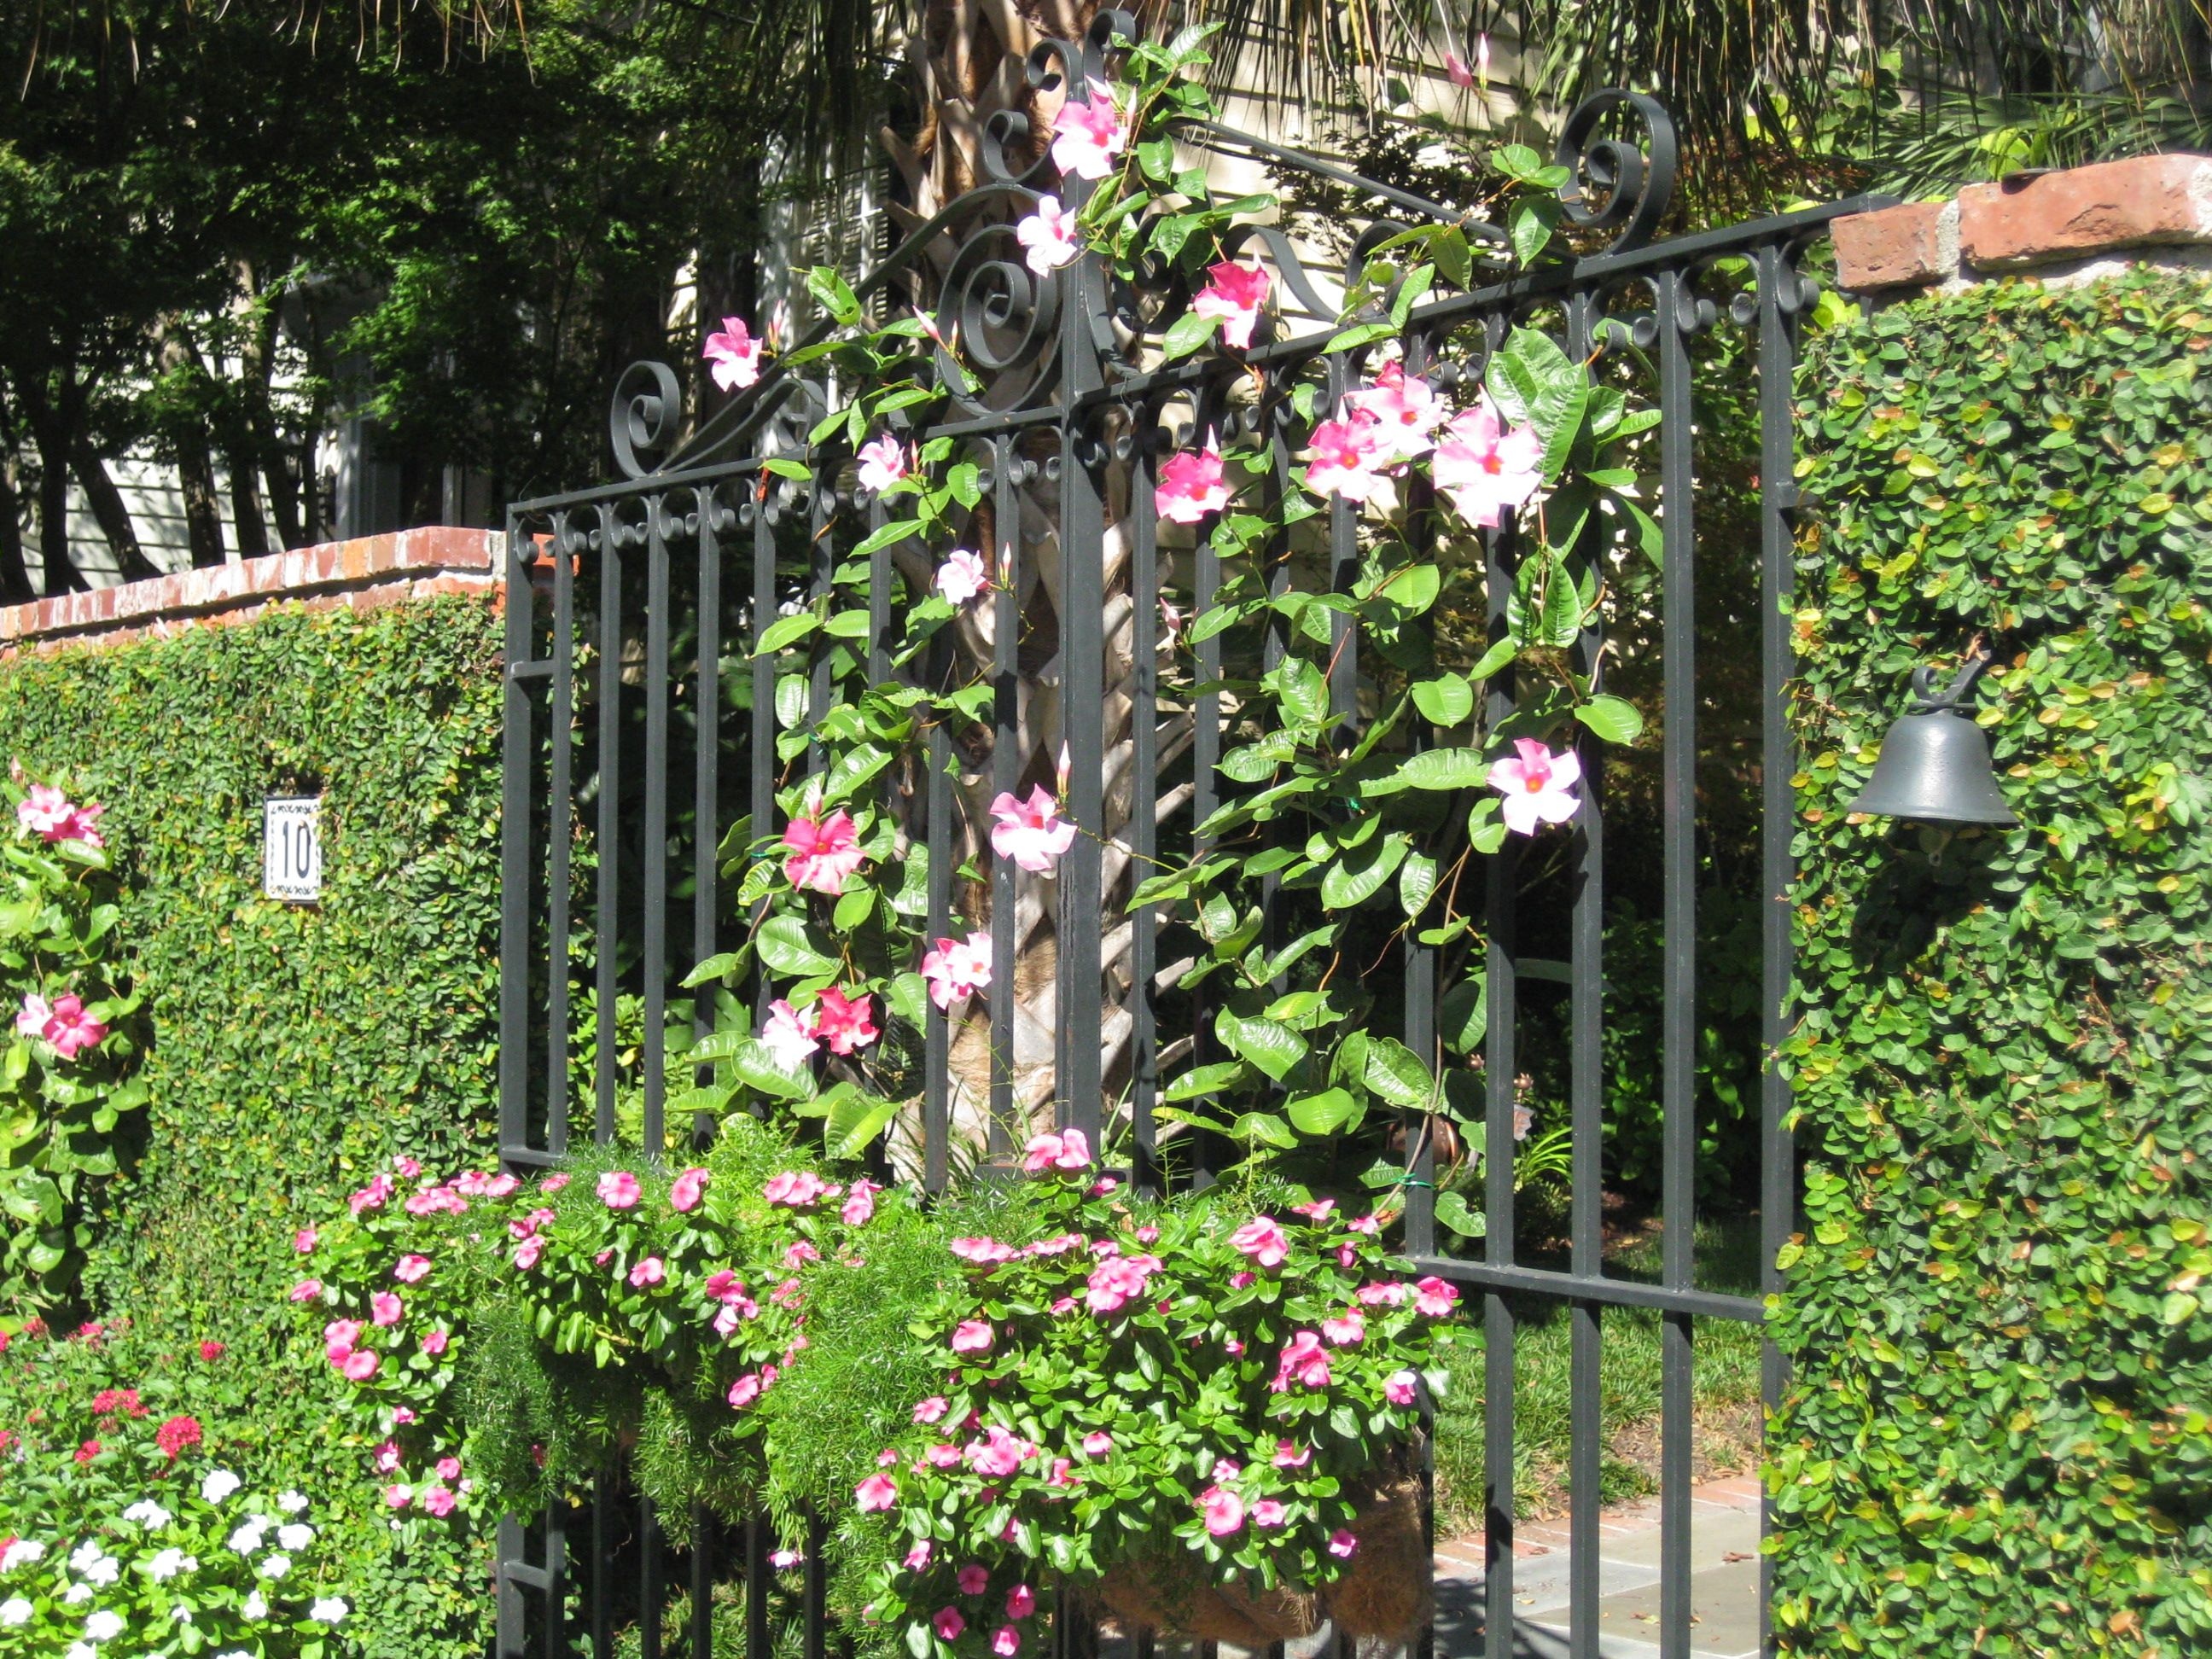 A Wrought Iron Garden Gate With Vine Covered Walls On Each Side